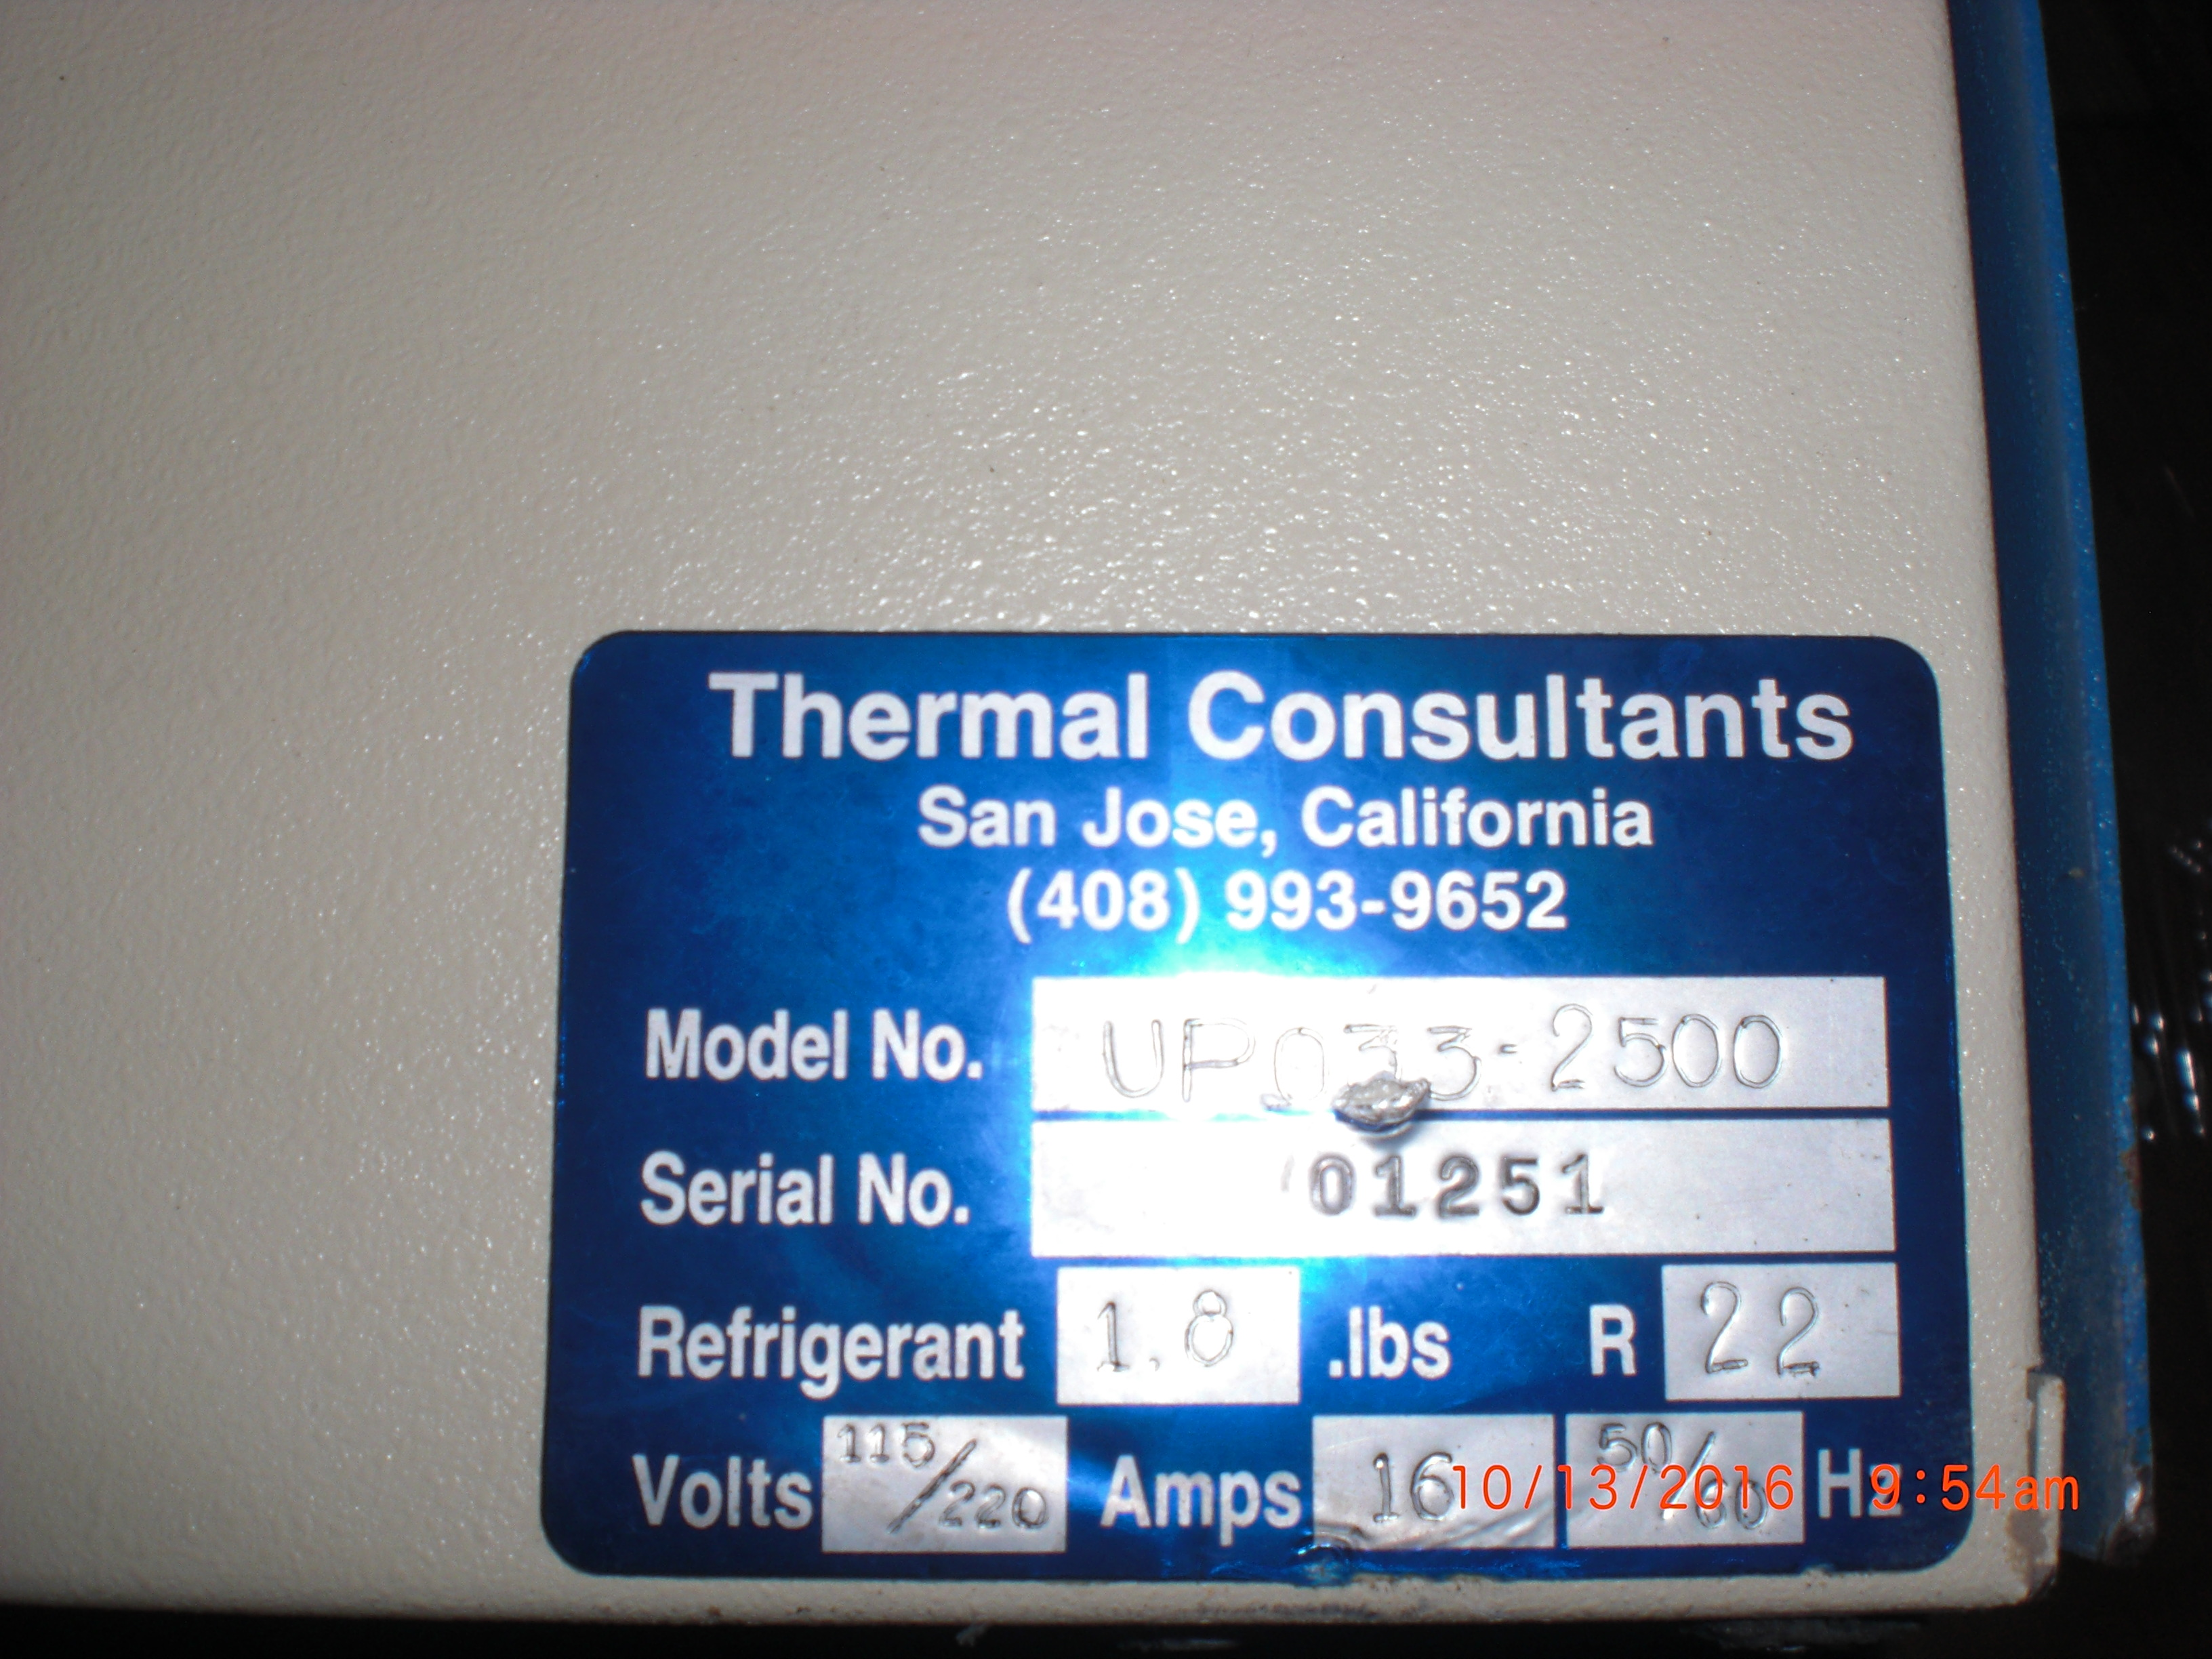 Chiller Thermal Consultants UP033-2500 TCU Recirculation Heating and Chiller Unit,  115-220V, 16A, 50/60Hz